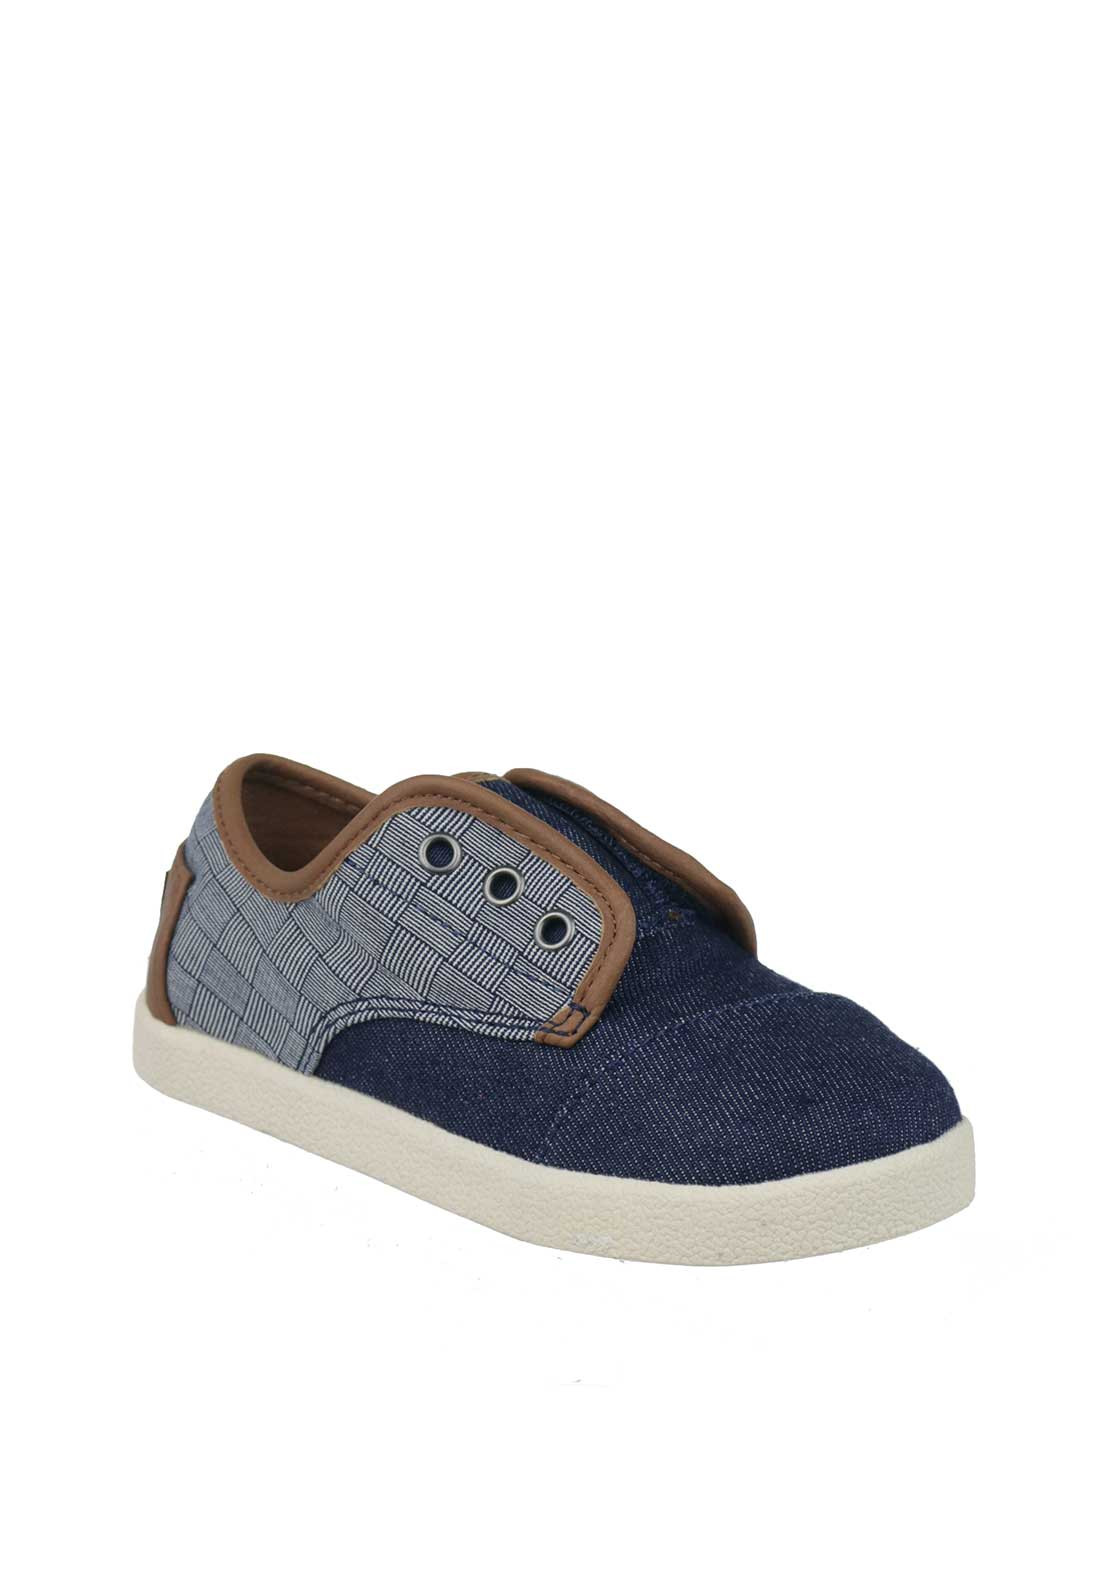 TOMS Baby Boys Velcro Denim Trainers, Blue